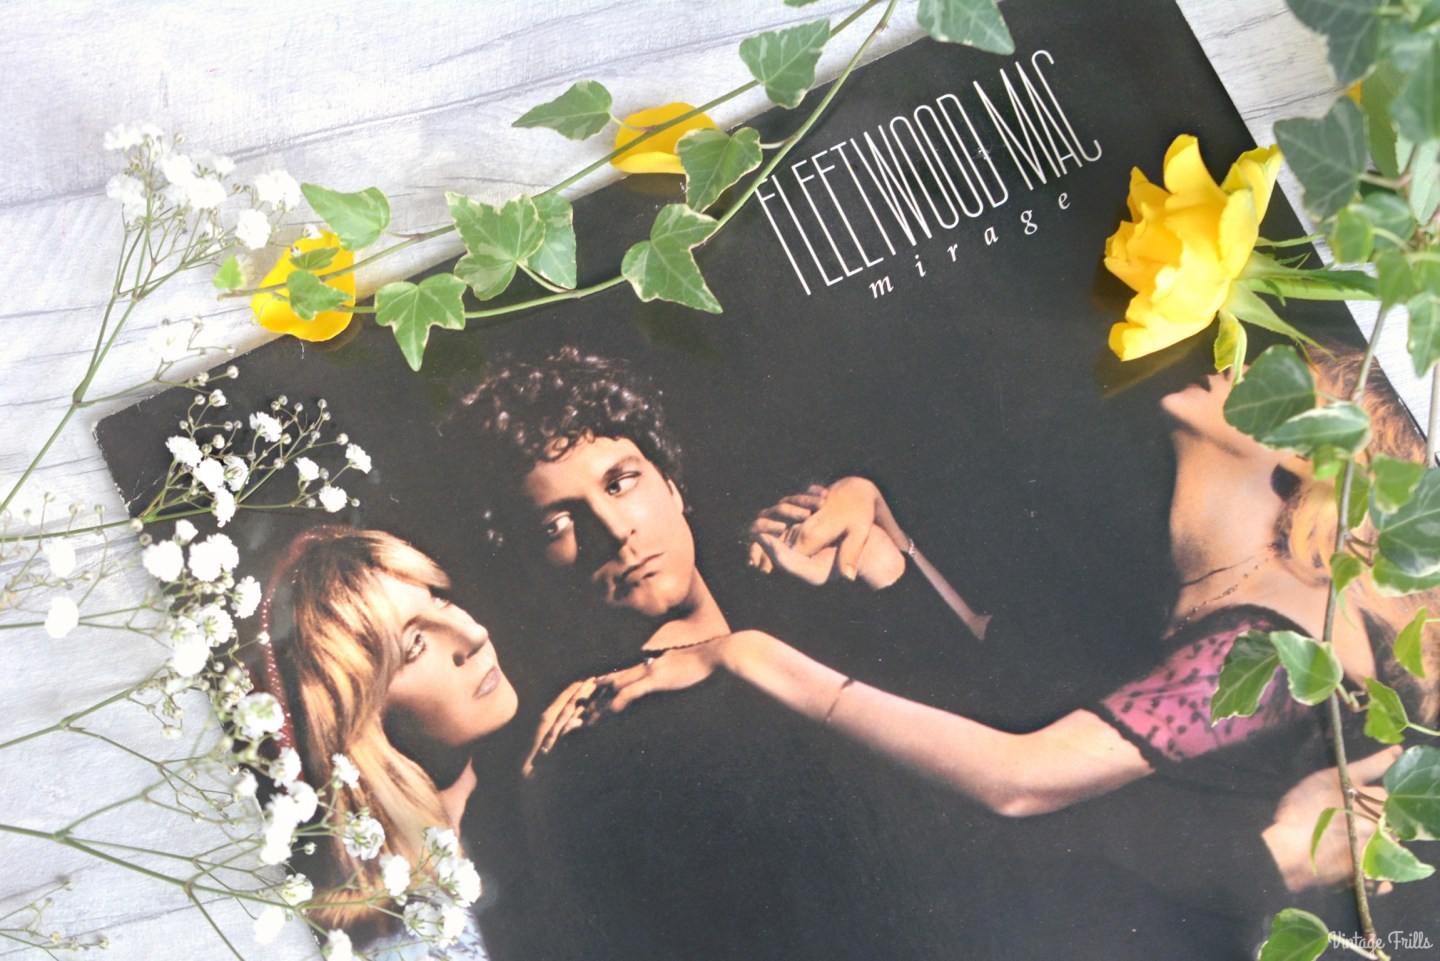 My Top 10 Fleetwood Mac Songs | Vintage Frills